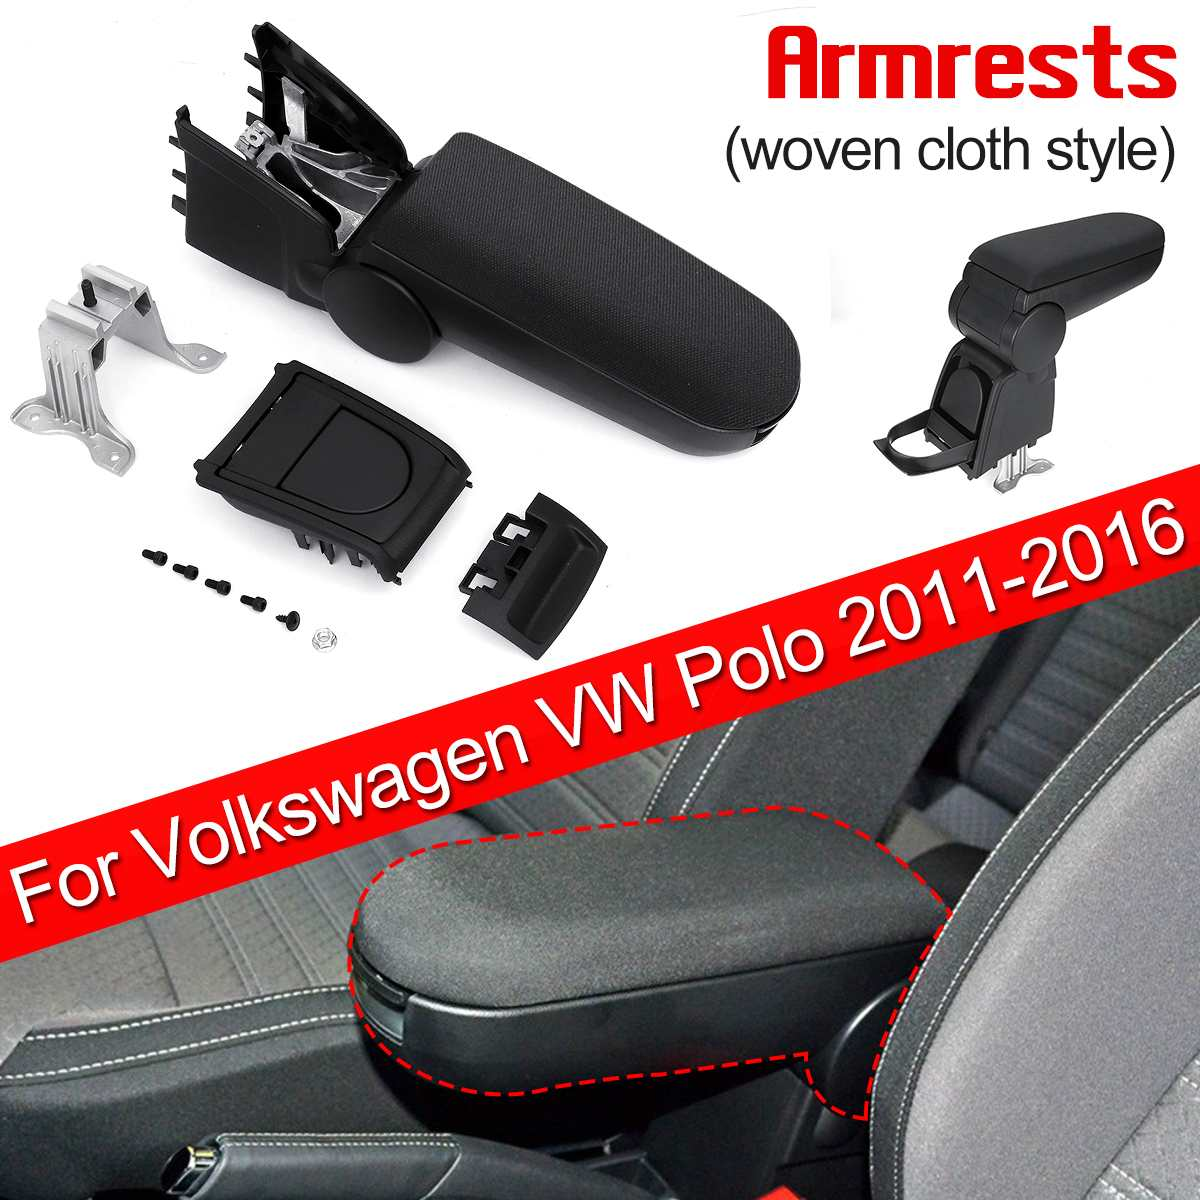 Armrests Box With Cup Holders Woven Fabric Armrests Storage Case Console For Volkswagen For VW Polo 2011 - 2016Armrests Box With Cup Holders Woven Fabric Armrests Storage Case Console For Volkswagen For VW Polo 2011 - 2016